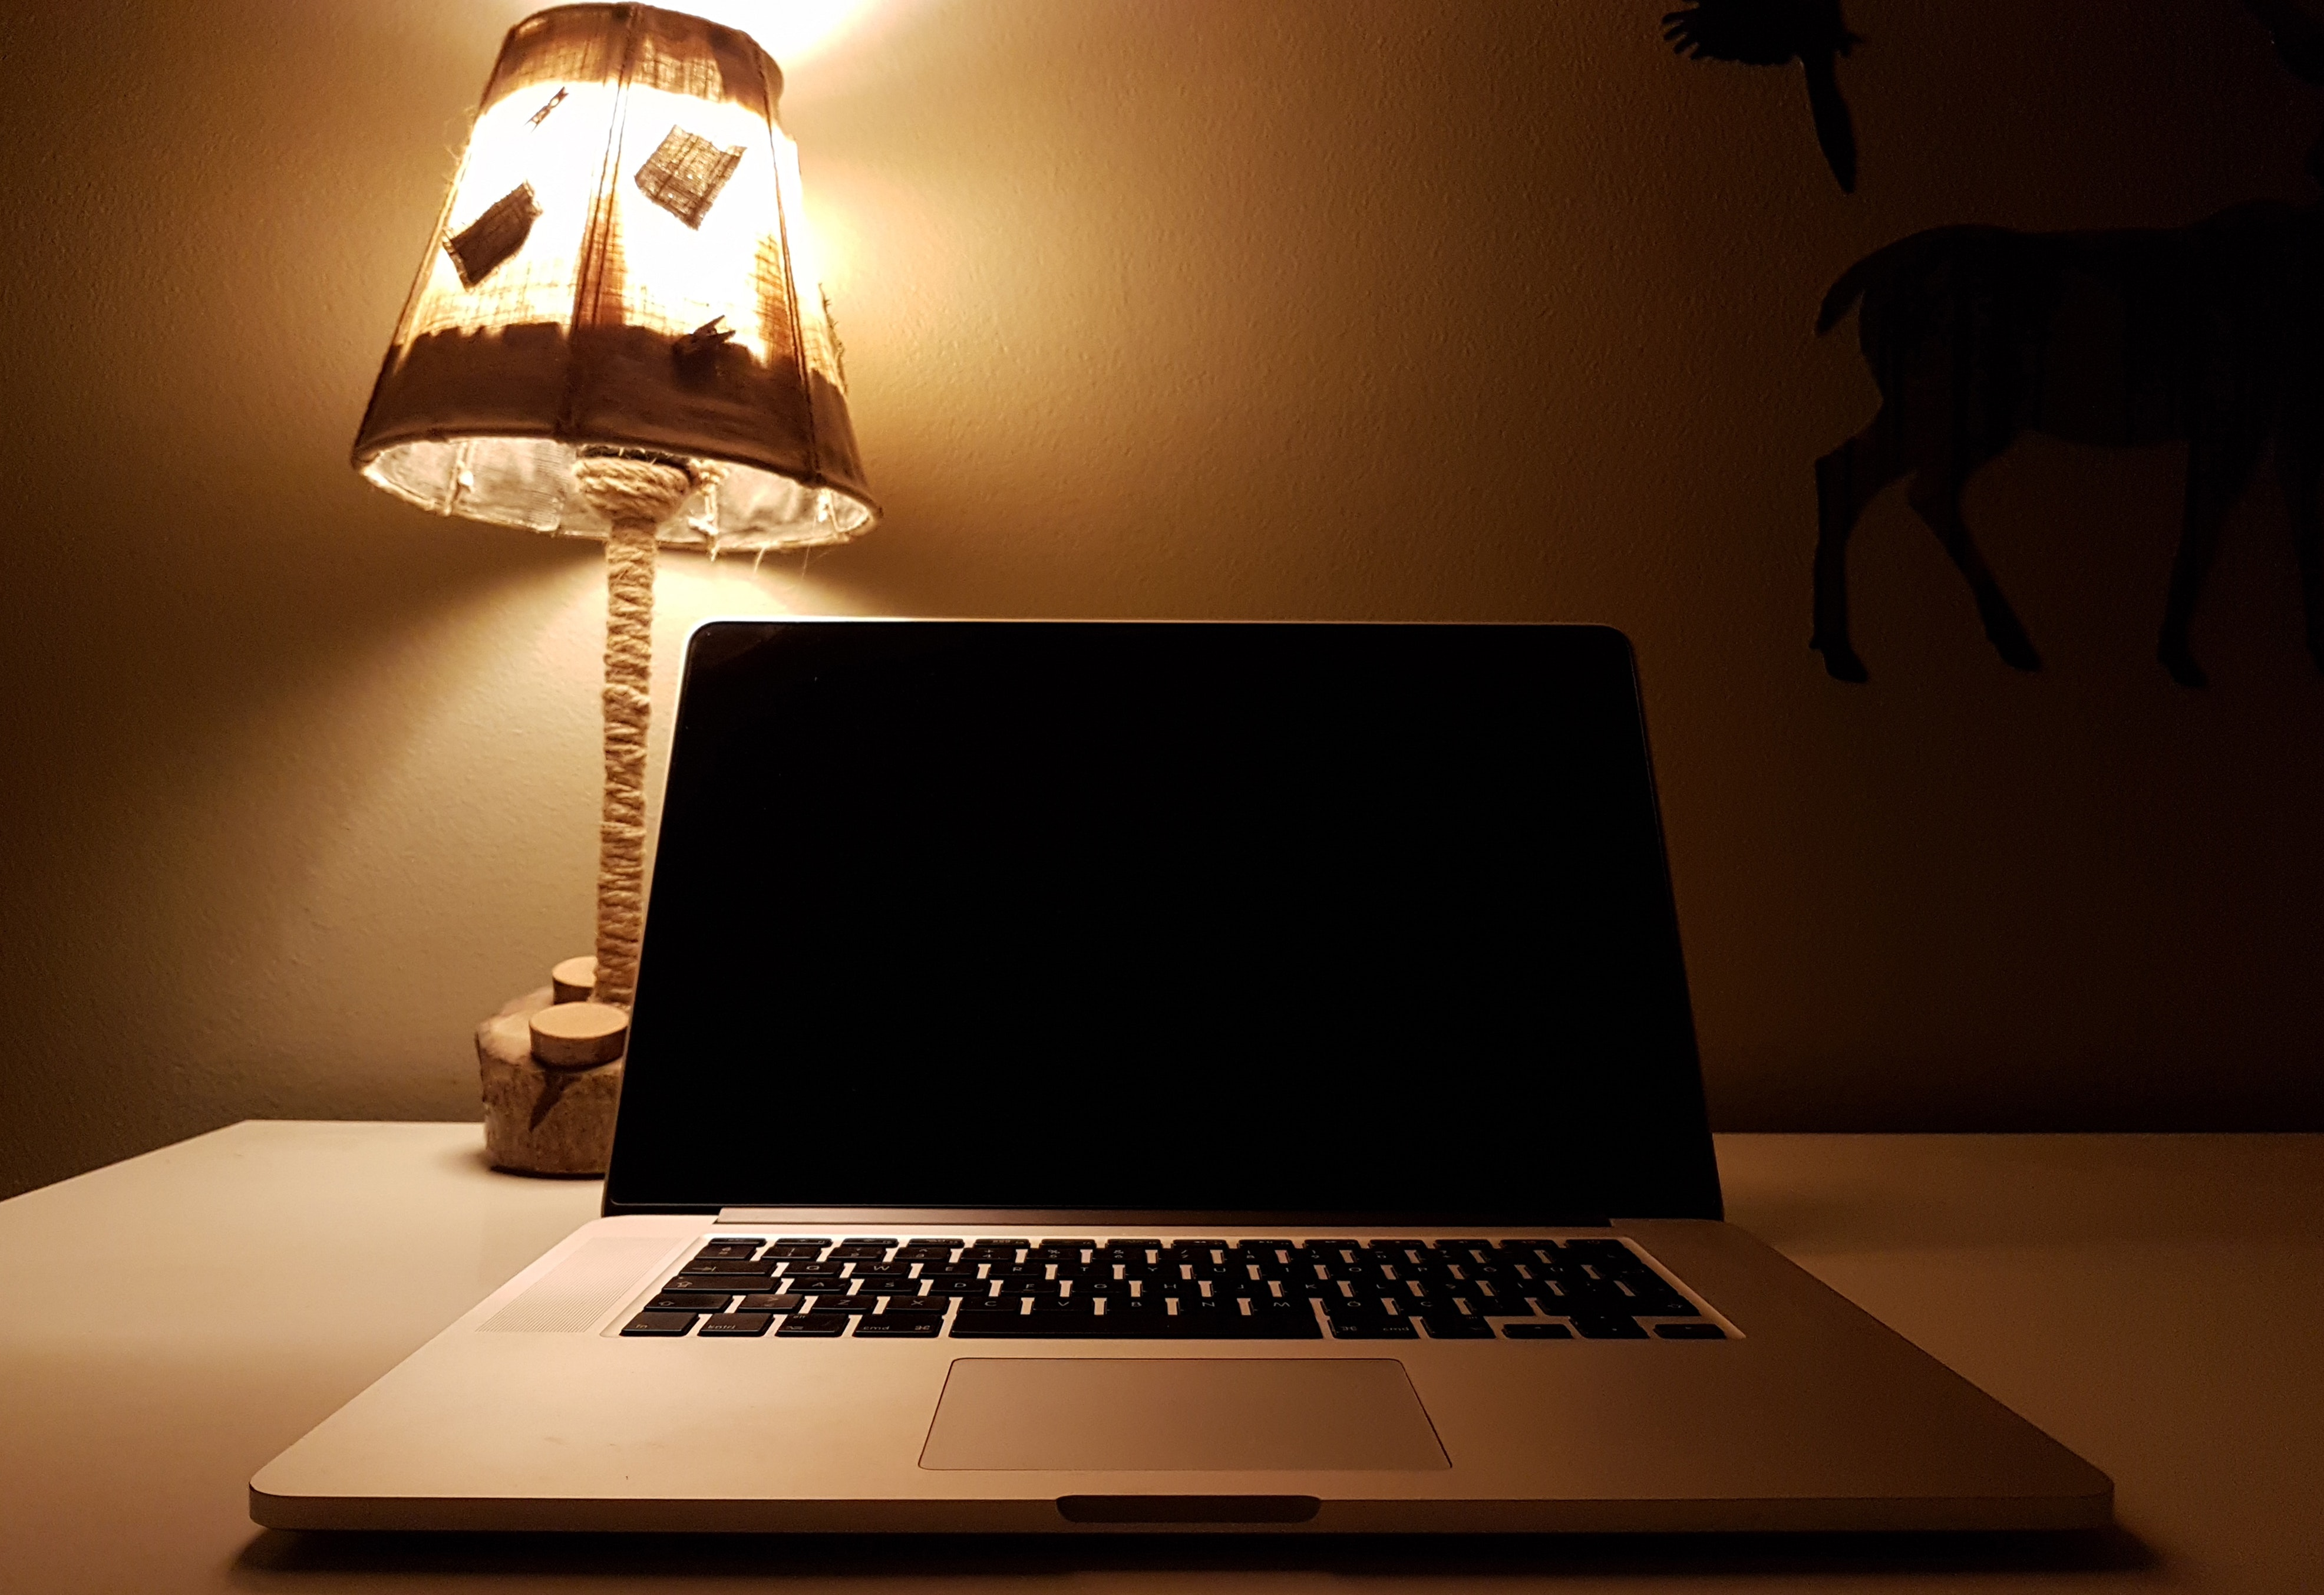 Macbook Pro, Sepia, Screen, Shadow, Table, HQ Photo